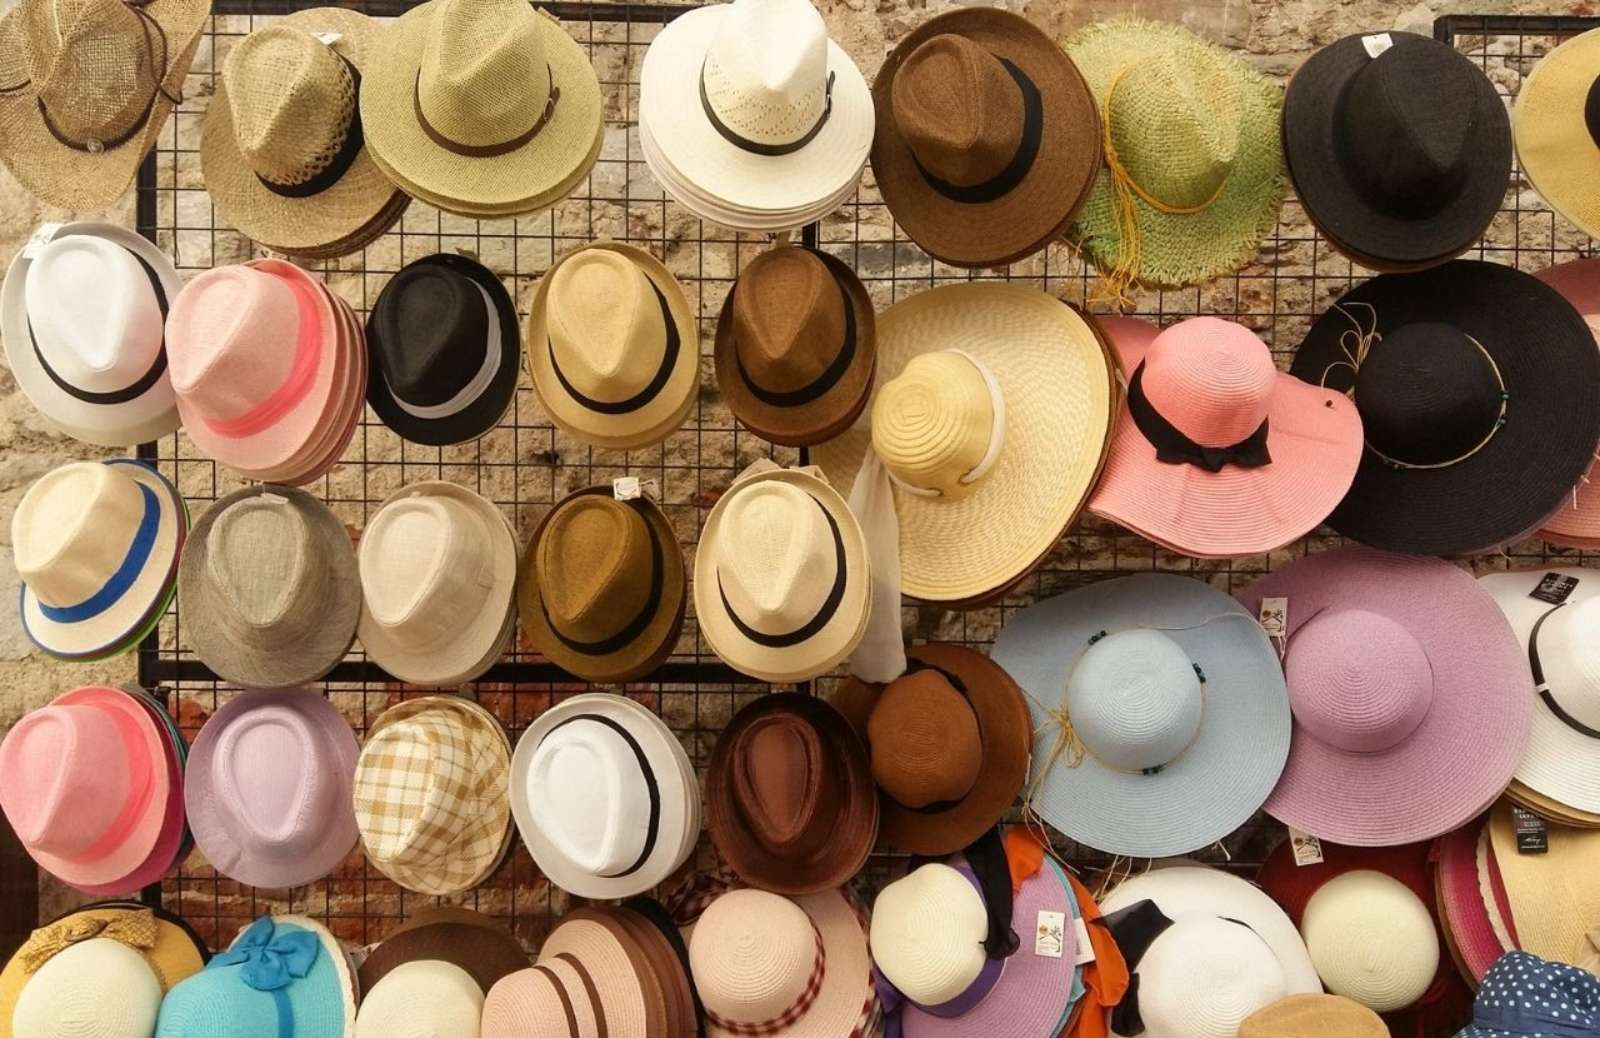 Wall covered with hats in various colors